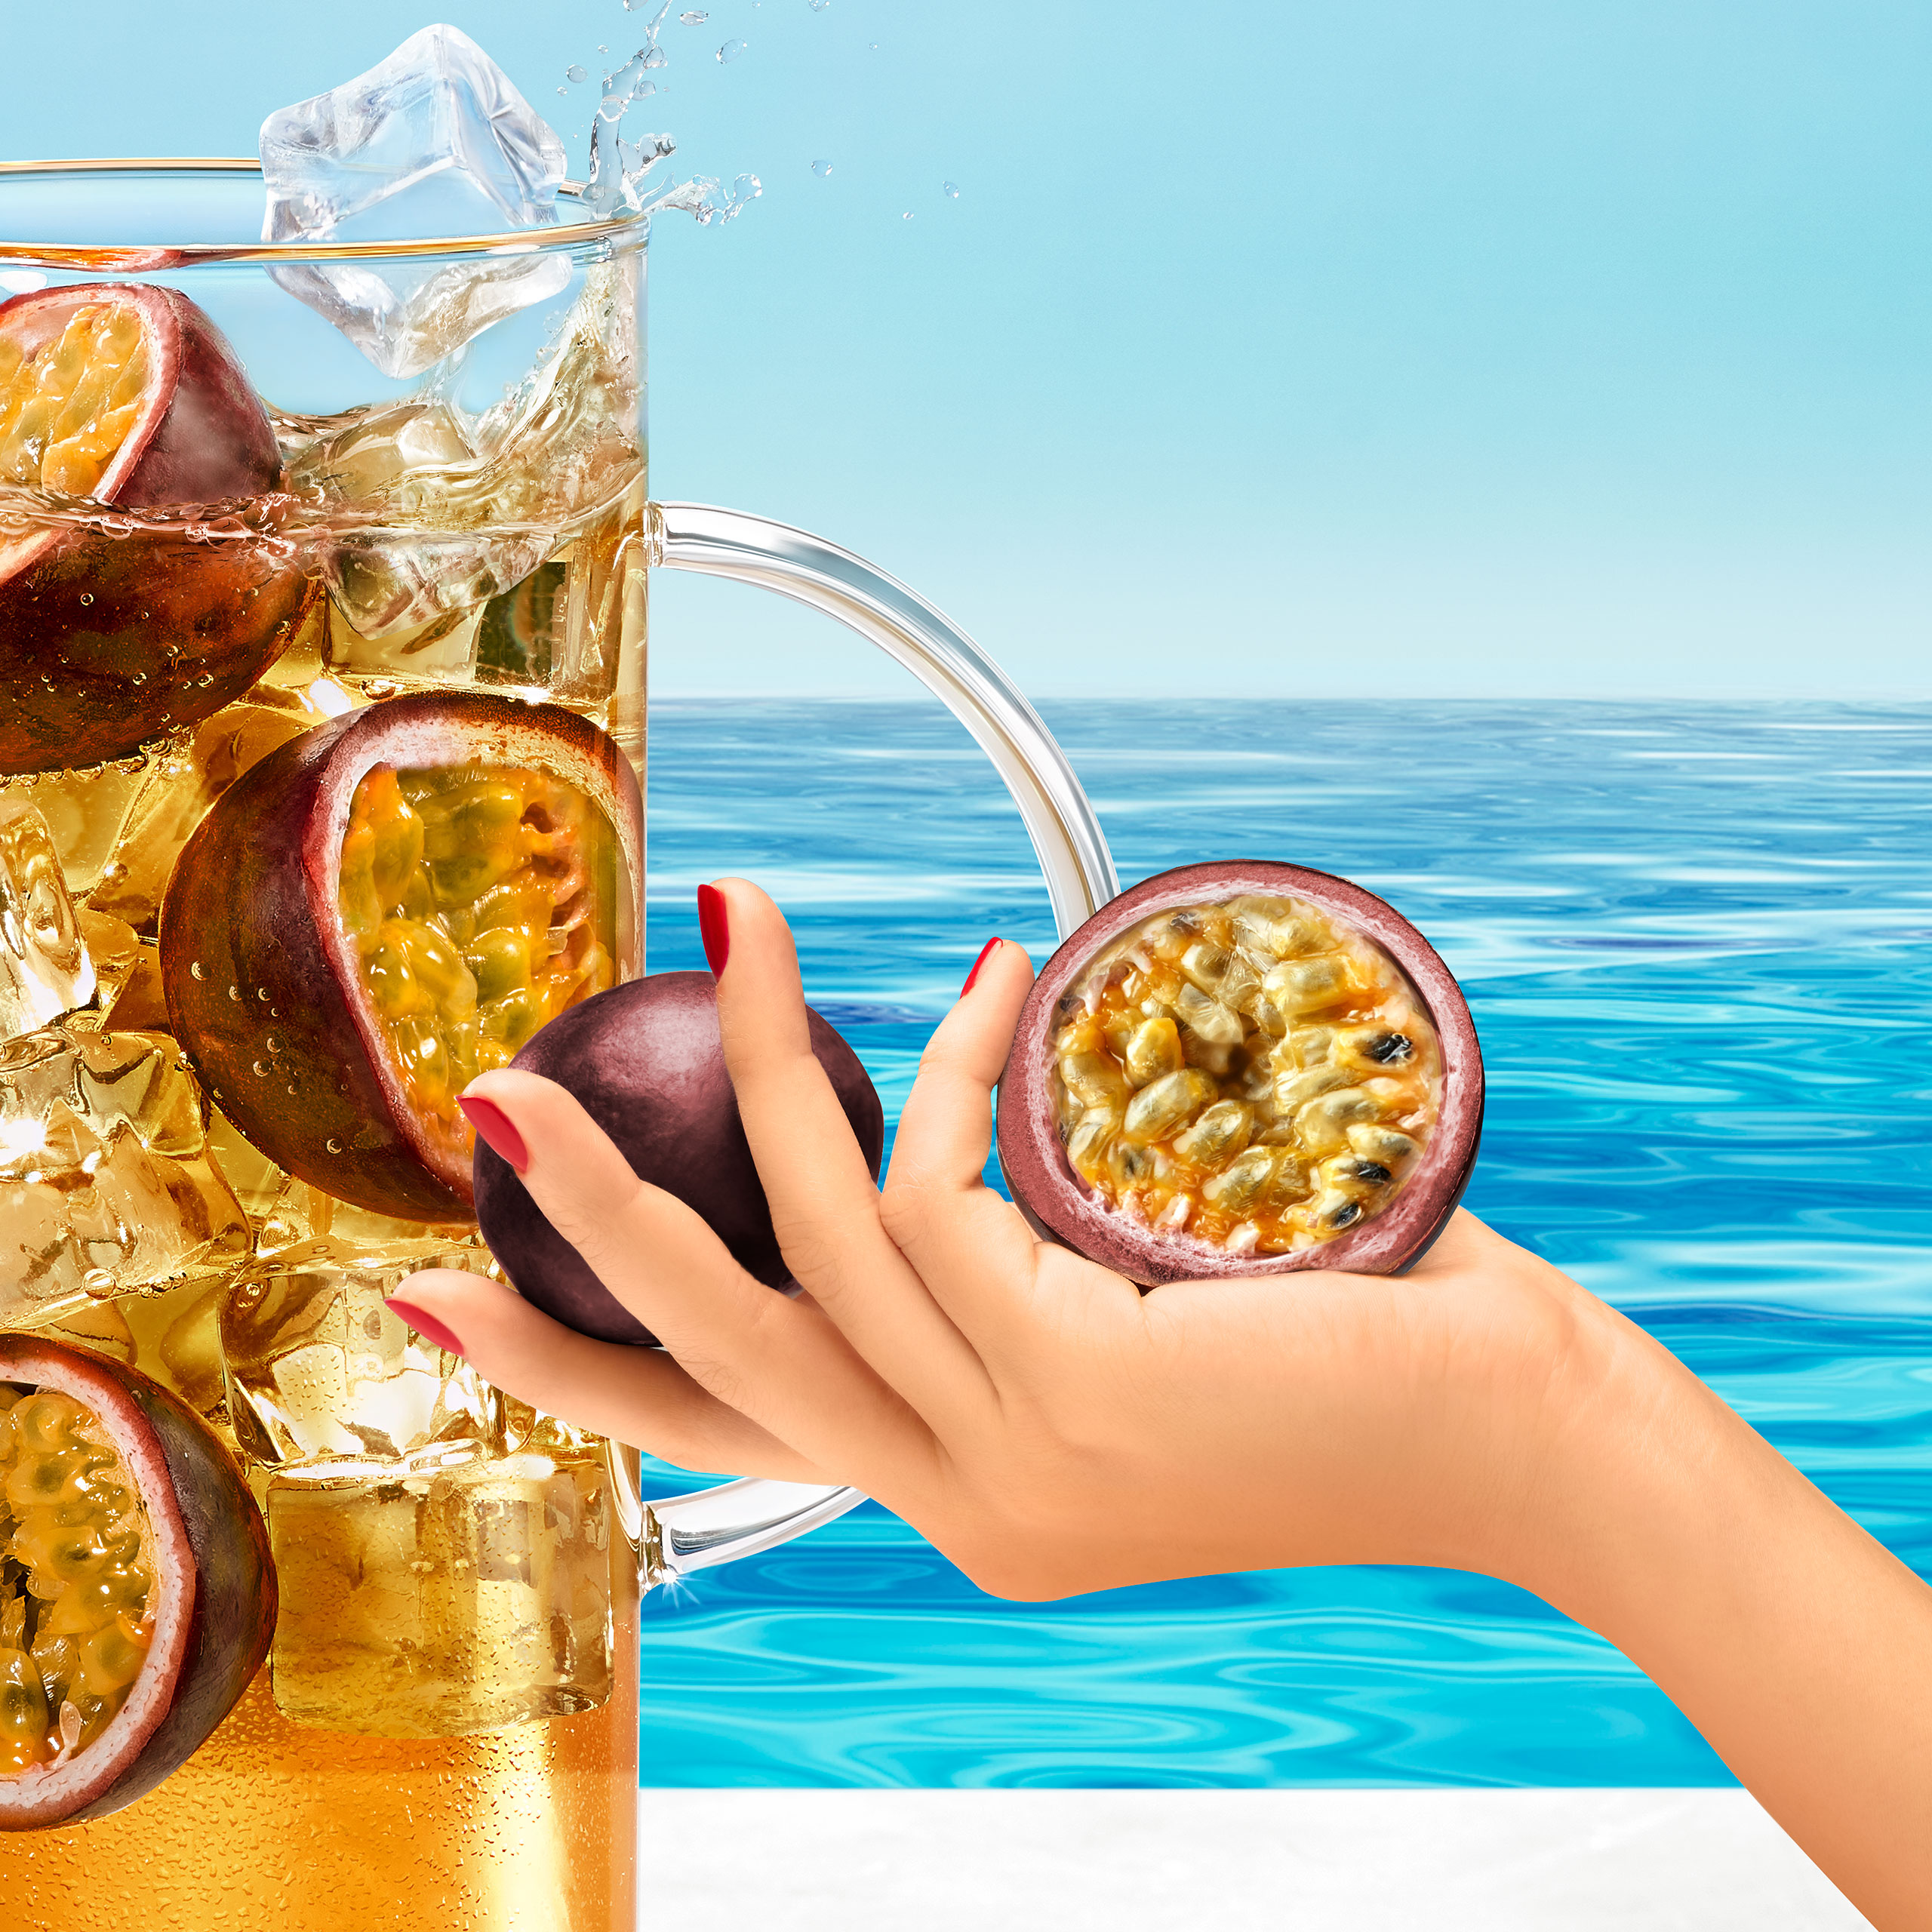 Commercial photography for Kusmi Tea showing how to prepare Iced tea. With a jar filled with iced tea, passion fruits and ice cubes at the swimming pool. Four arms are preparing the tea with the ice cubes, the tea bag and the passion fruits. Photograph retouched by Maria Queralt